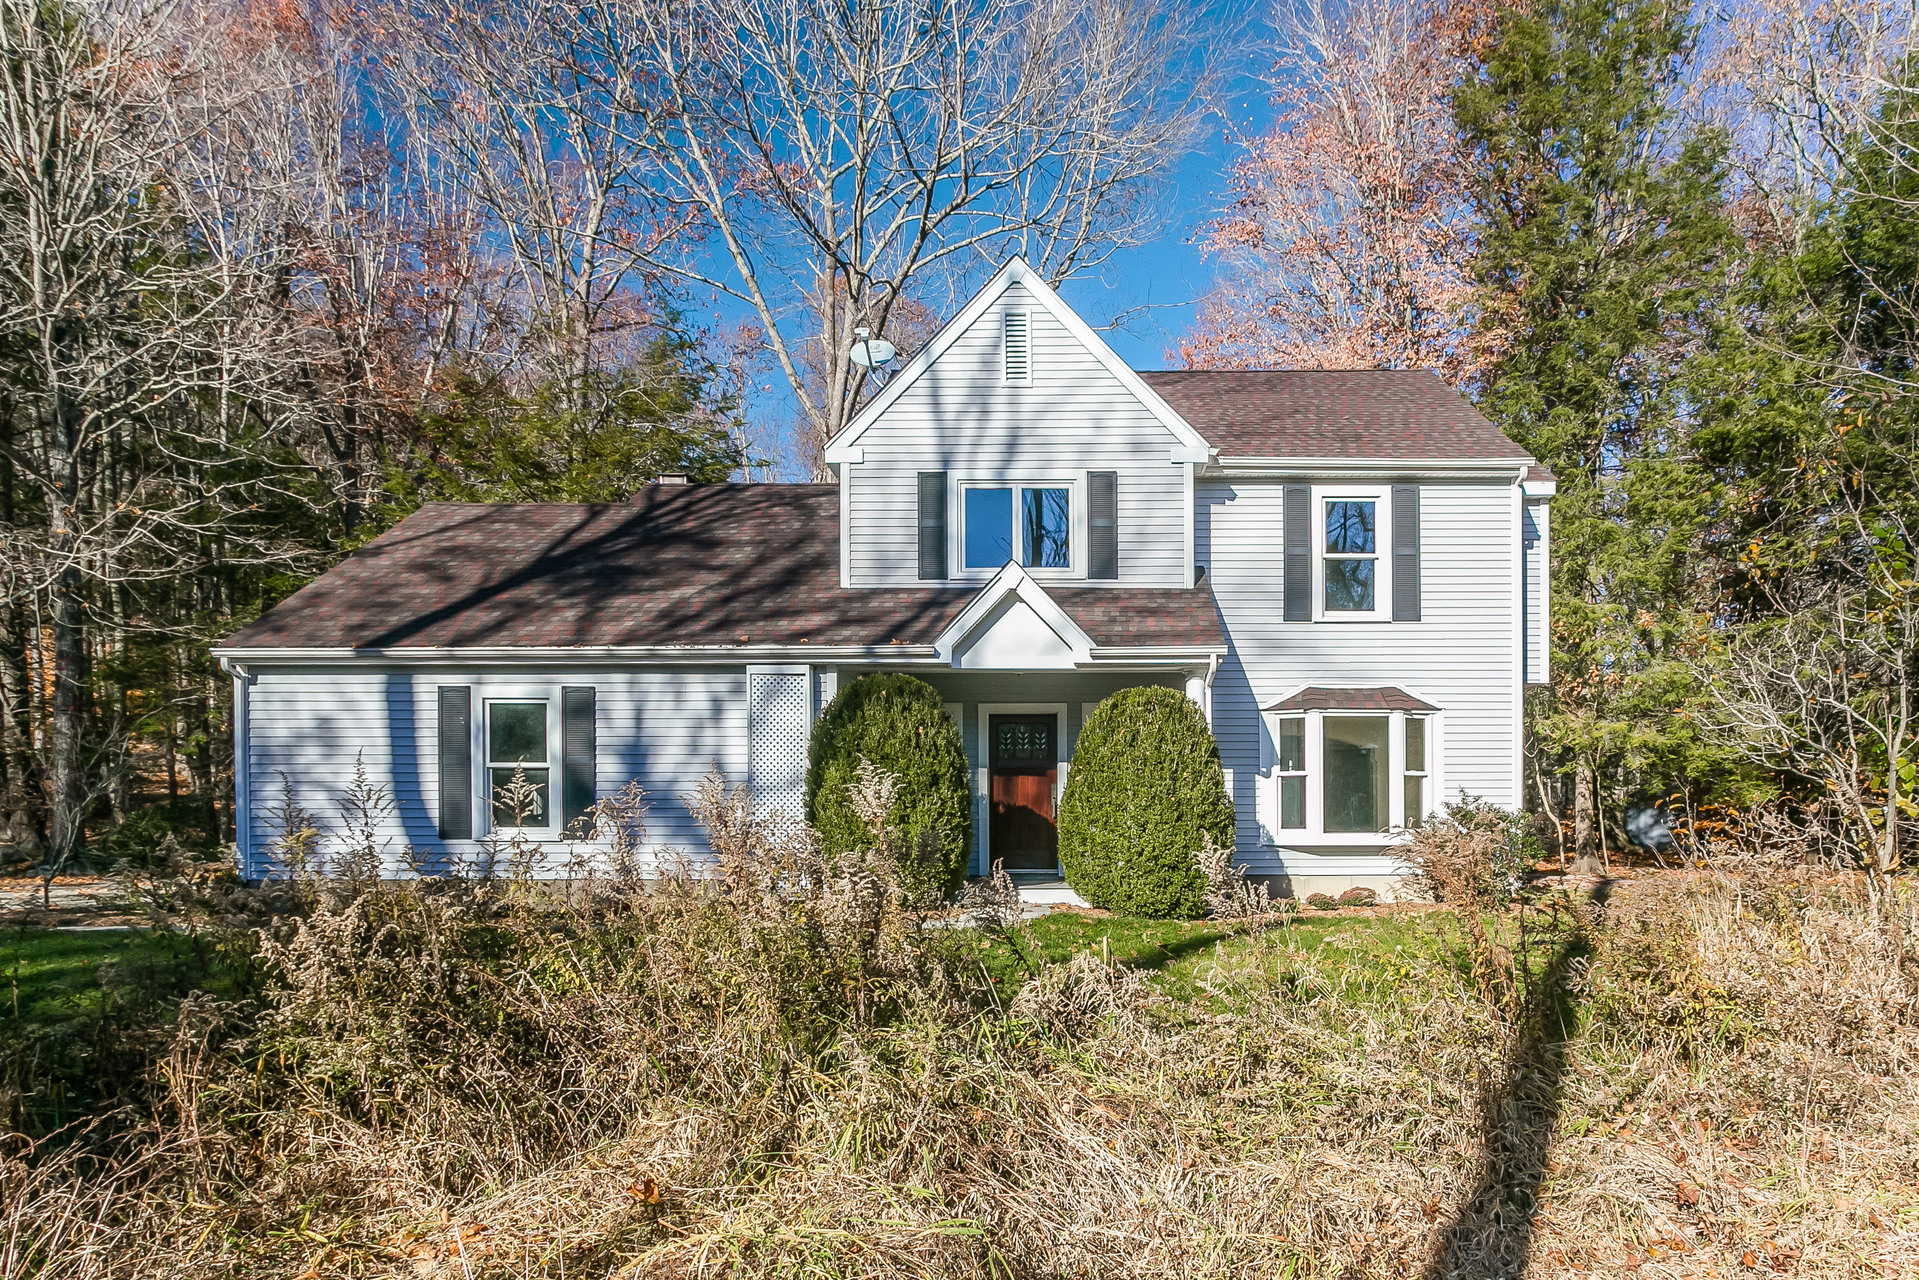 Single Family Home for Sale at 38 Georgetown Cir Madison, Connecticut 06443 United States